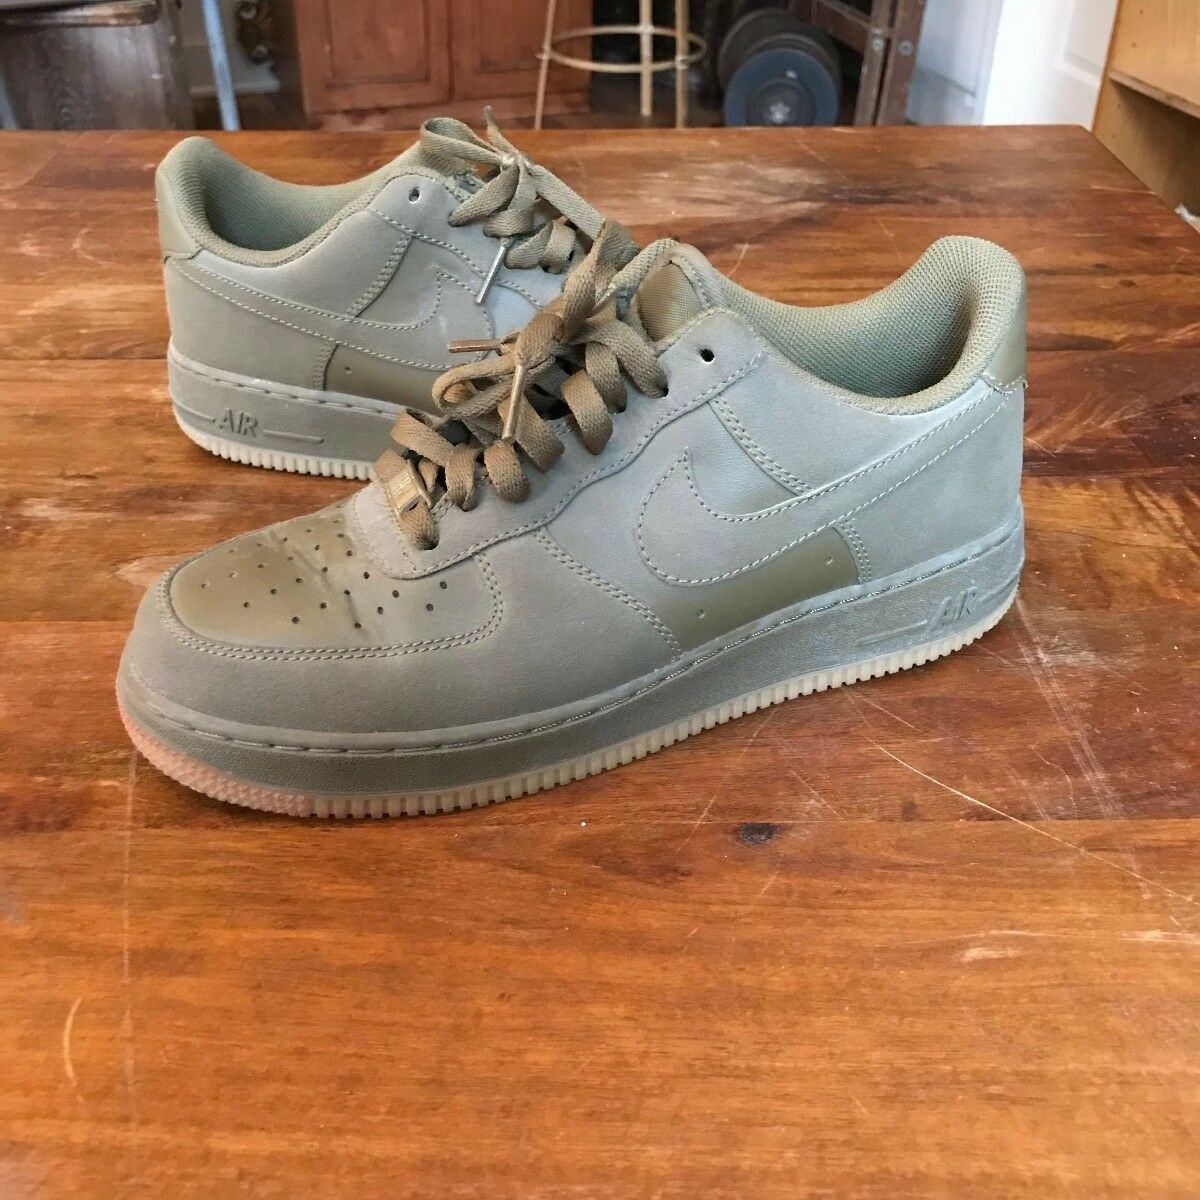 Nike Air Force 1 Low in Iguana | 315122-201-8? Mens 8.5 US